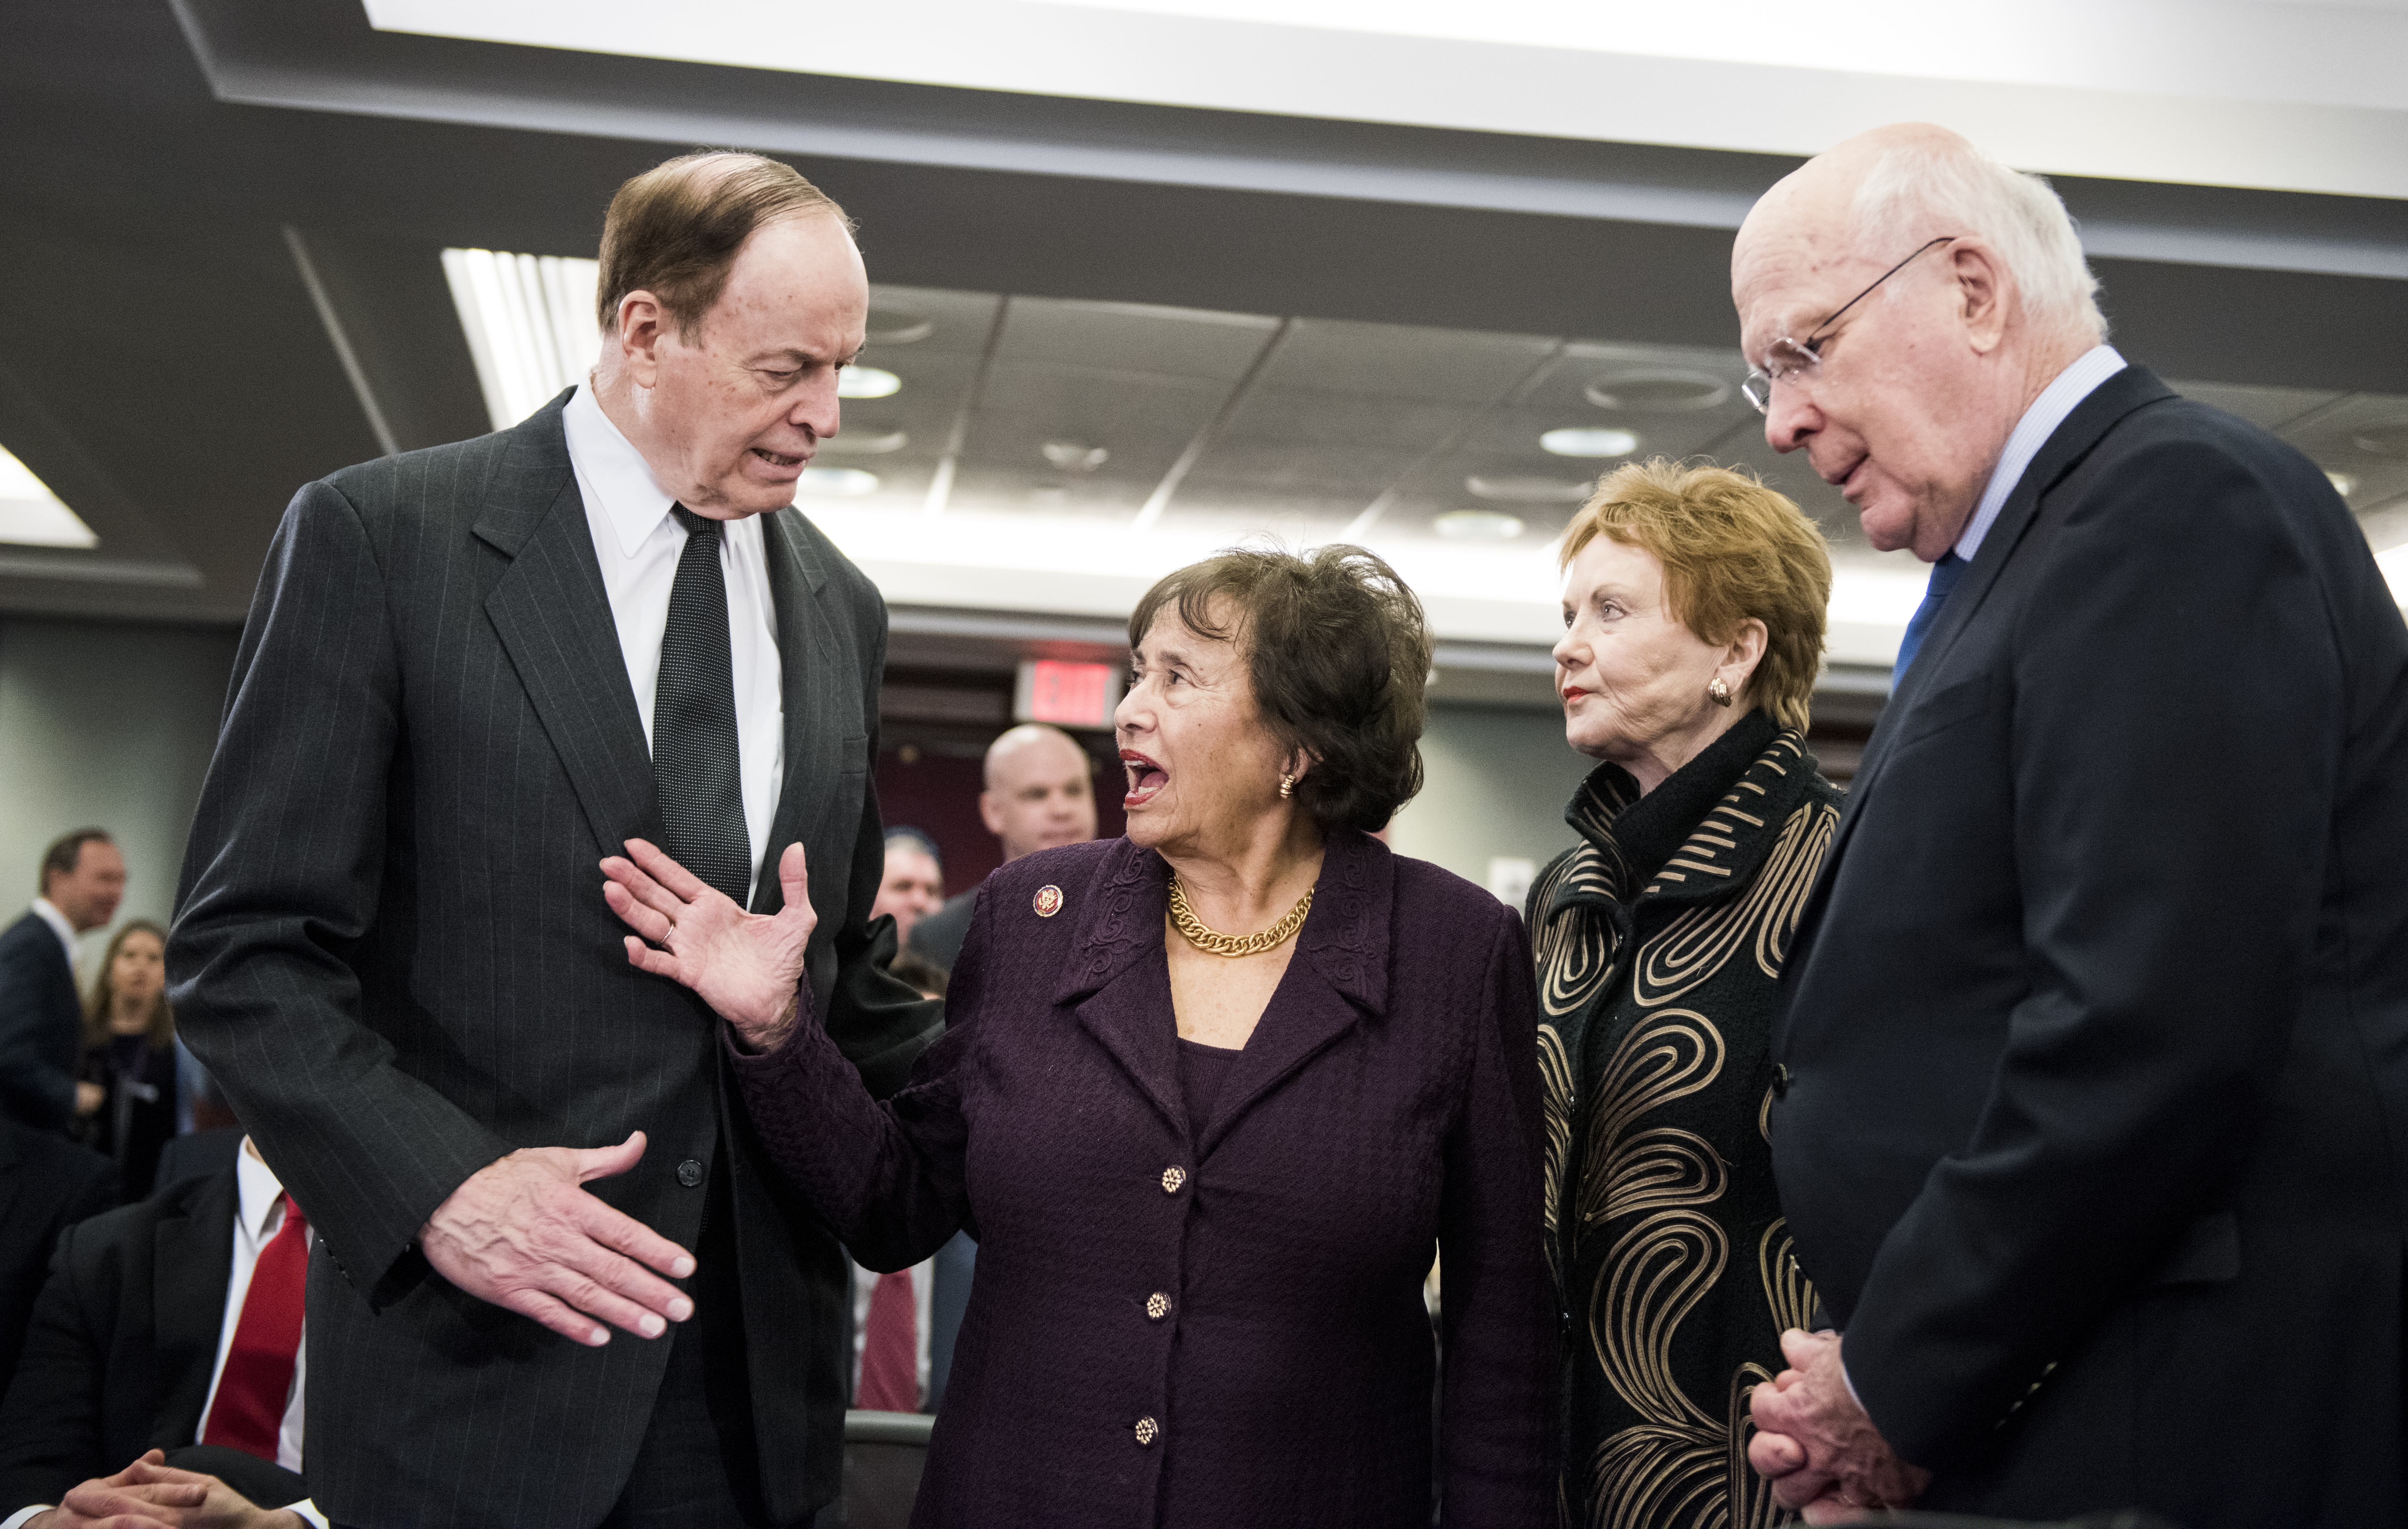 UNITED STATES - JANUARY 30: From left, Senate Appropriations chairman Richard Shelby, R-Ala., House Appropriations chairwoman Nita Lowey, D-N.Y., House Appropriations ranking member Kay Granger, R-Texas, and Senate Appropriations ranking member Patrick Leahy, D-Vt., talk before the start of the Homeland Security Appropriations Conference Committee on Wednesday, Jan. 30, 2019. (Photo By Bill Clark/CQ Roll Call)